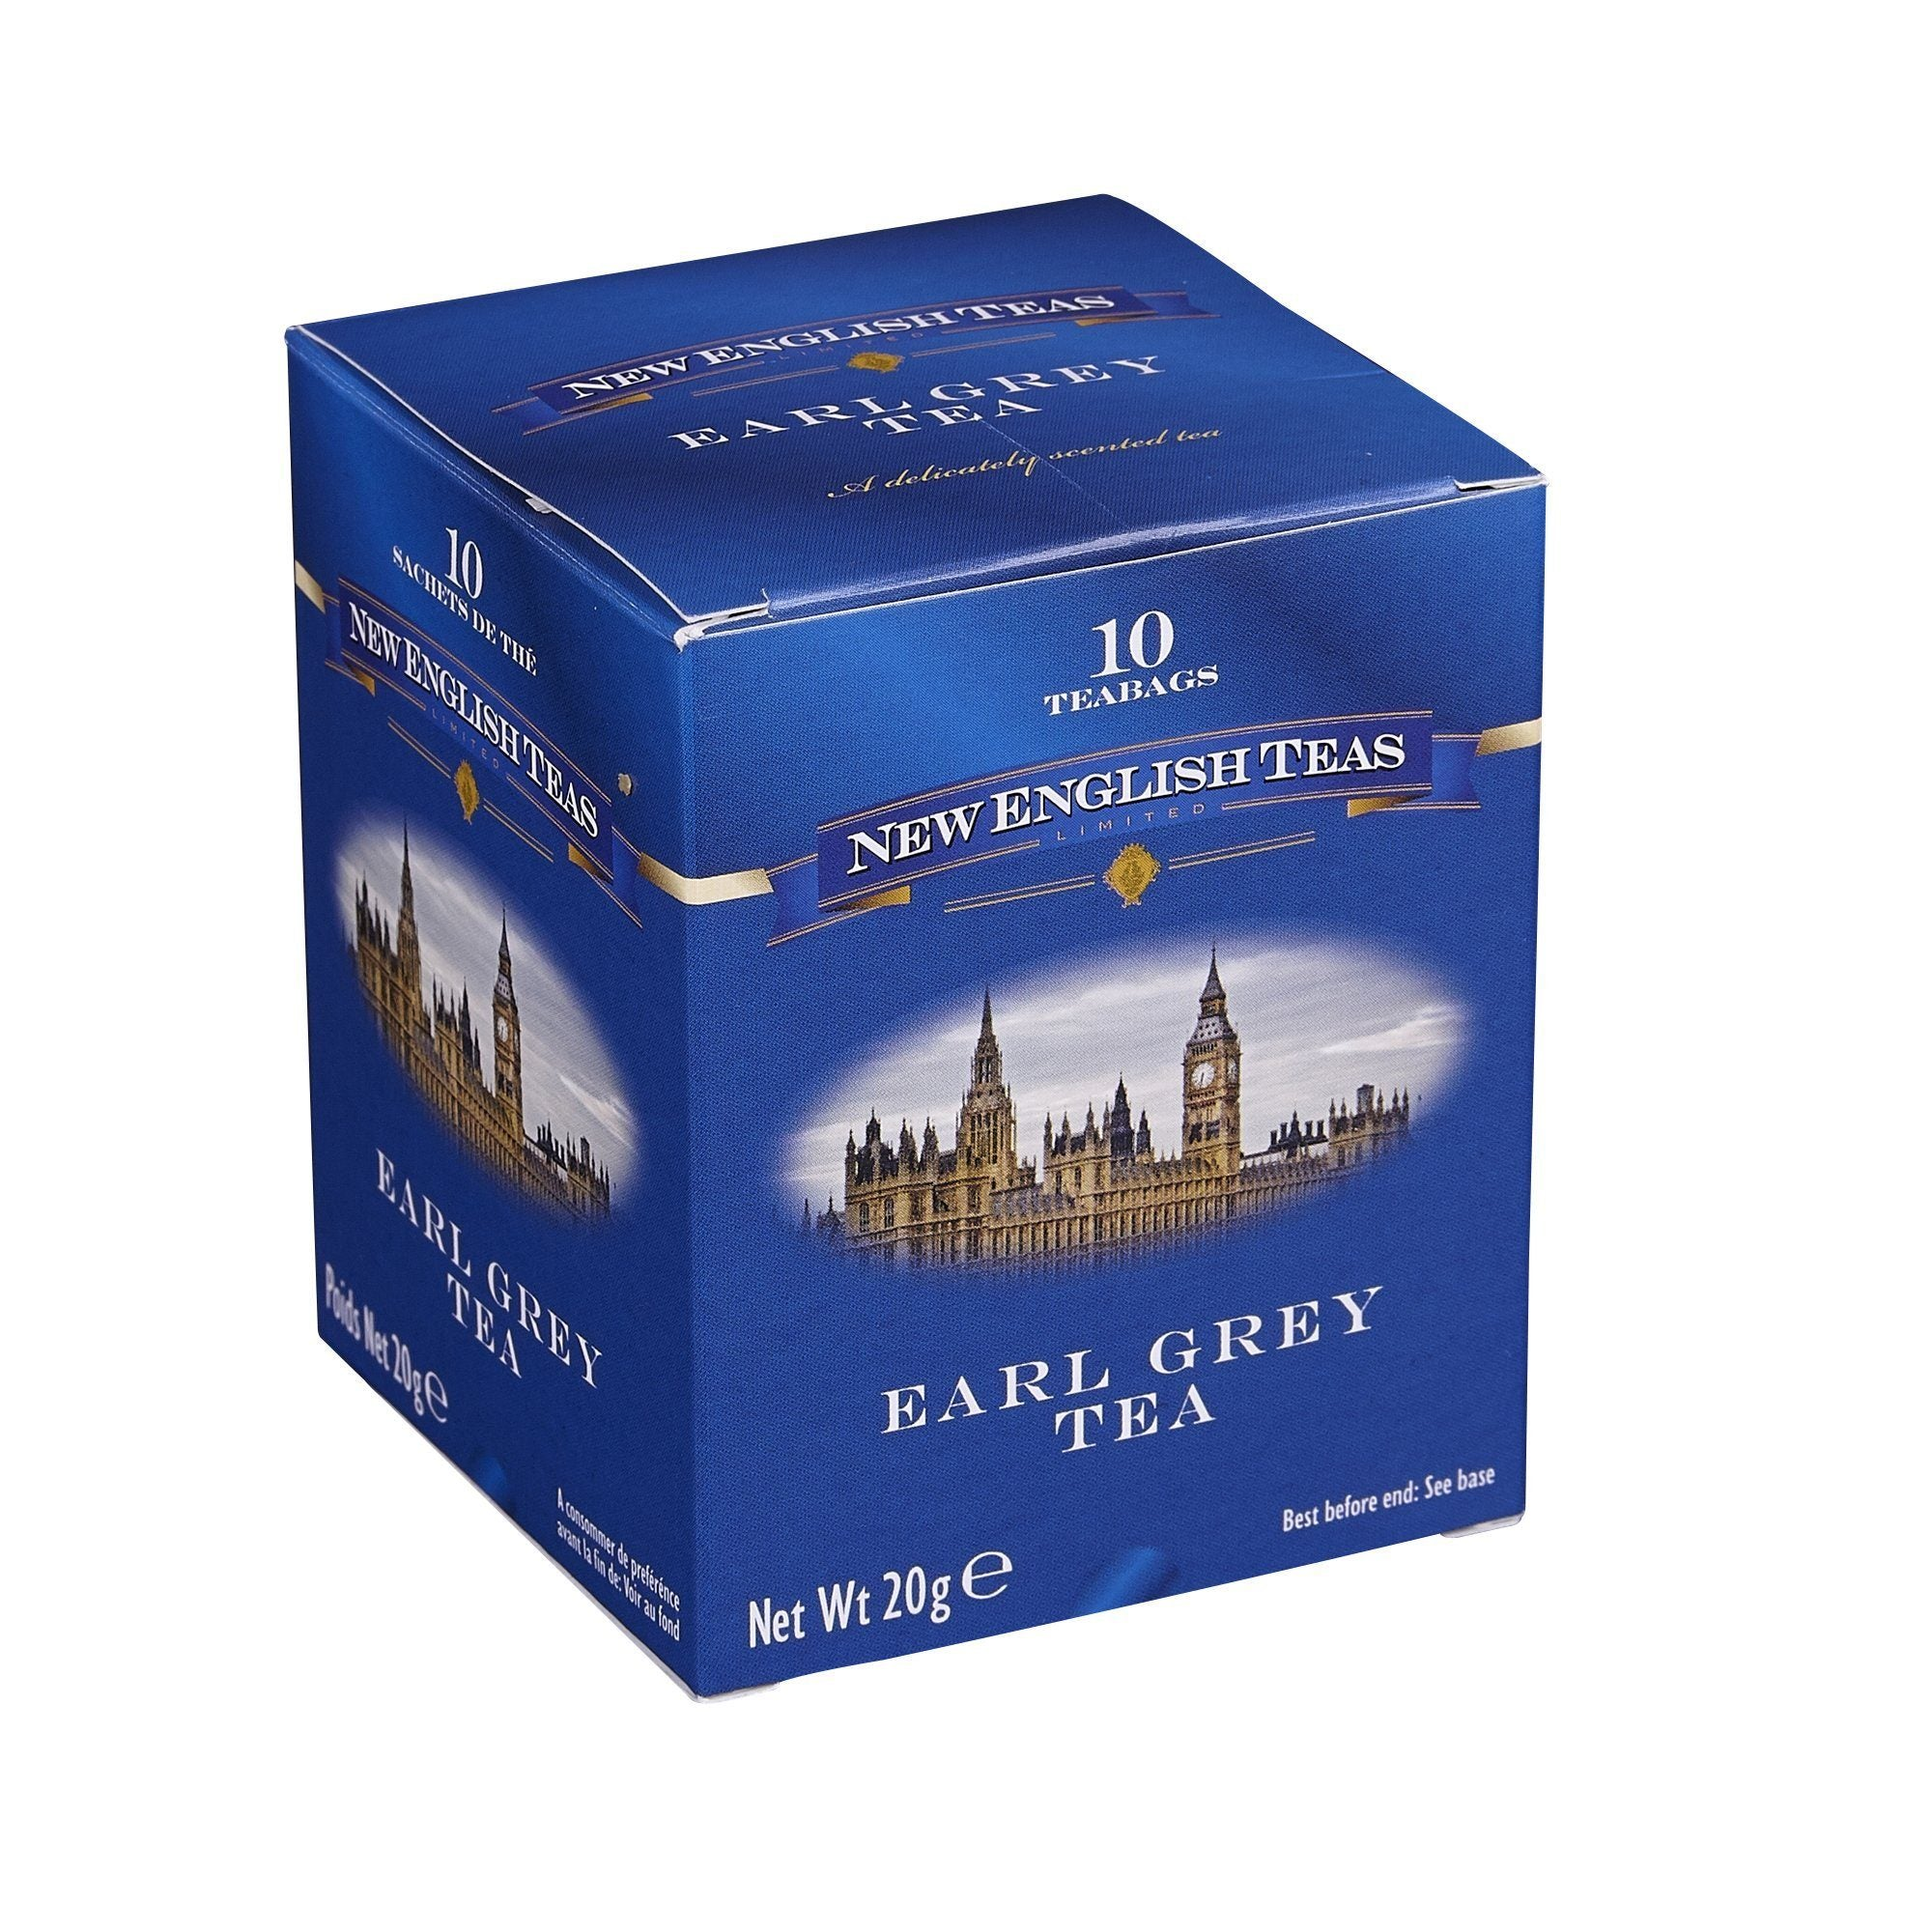 Classic Earl Grey Tea 10 Individually Wrapped Teabags Black Tea New English Teas